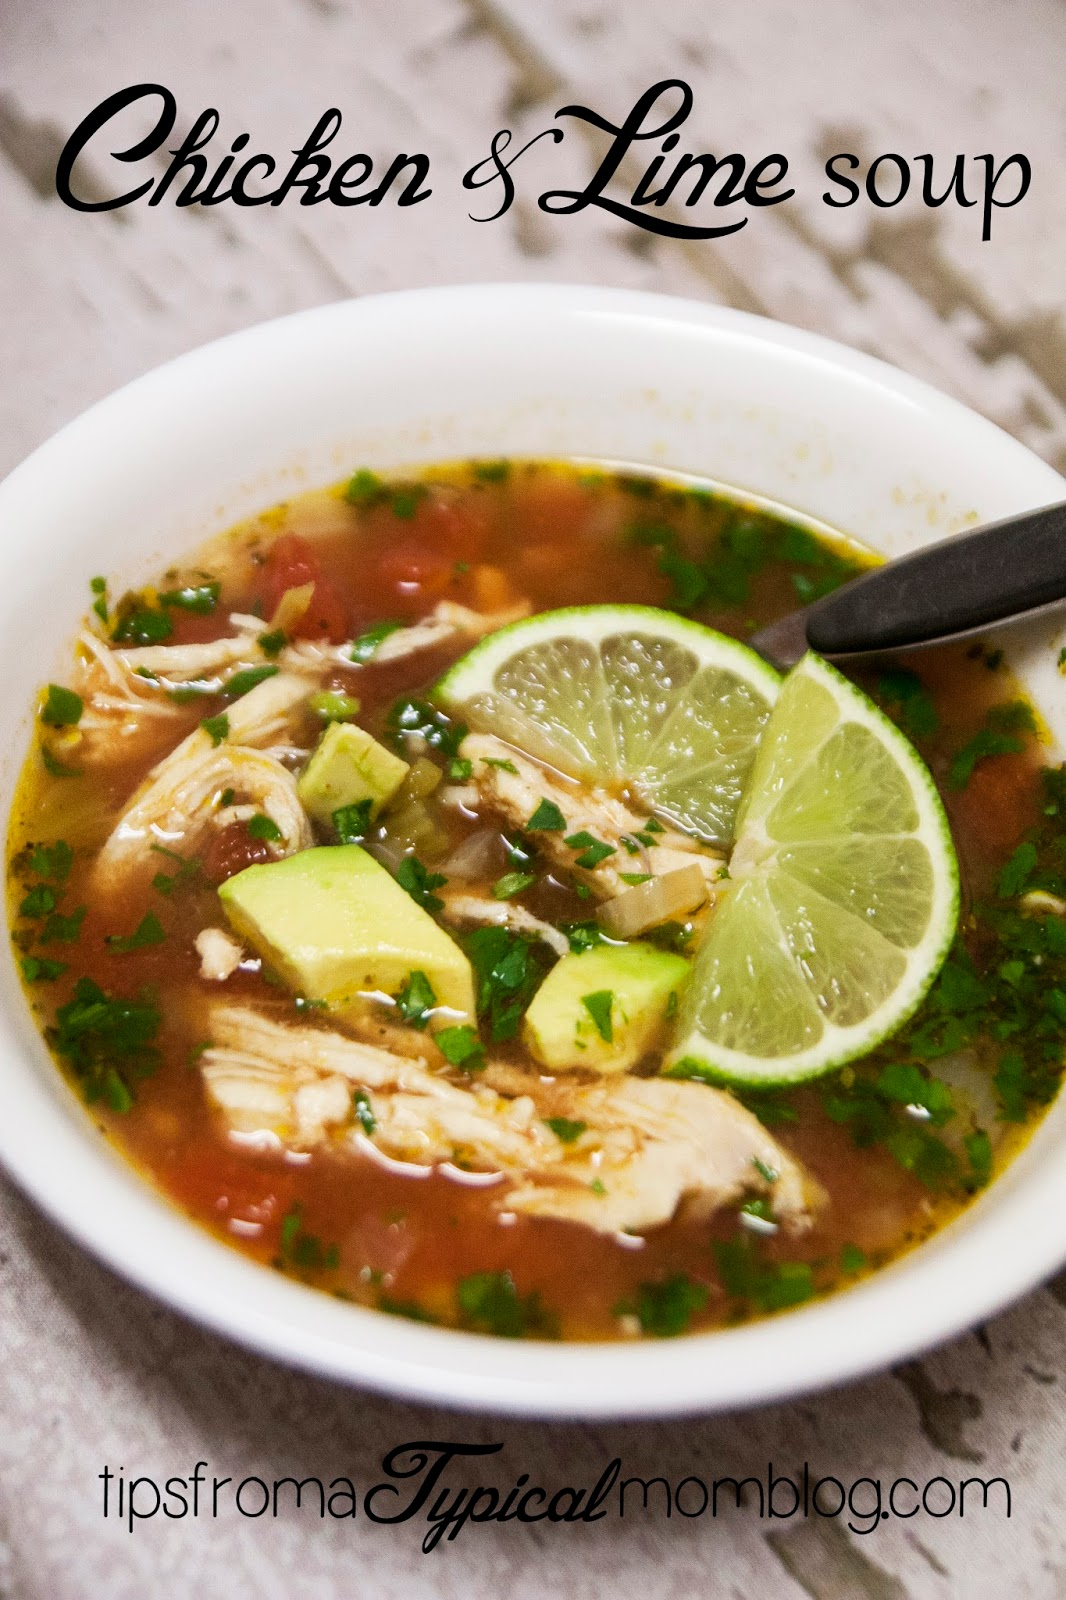 Chicken & Lime Soup.  So fresh and healthy.  Perfect blend of flavors.  My 8 year old son asked if we could have it for every dinner!  Success!  From Tips From a Typical Mom.